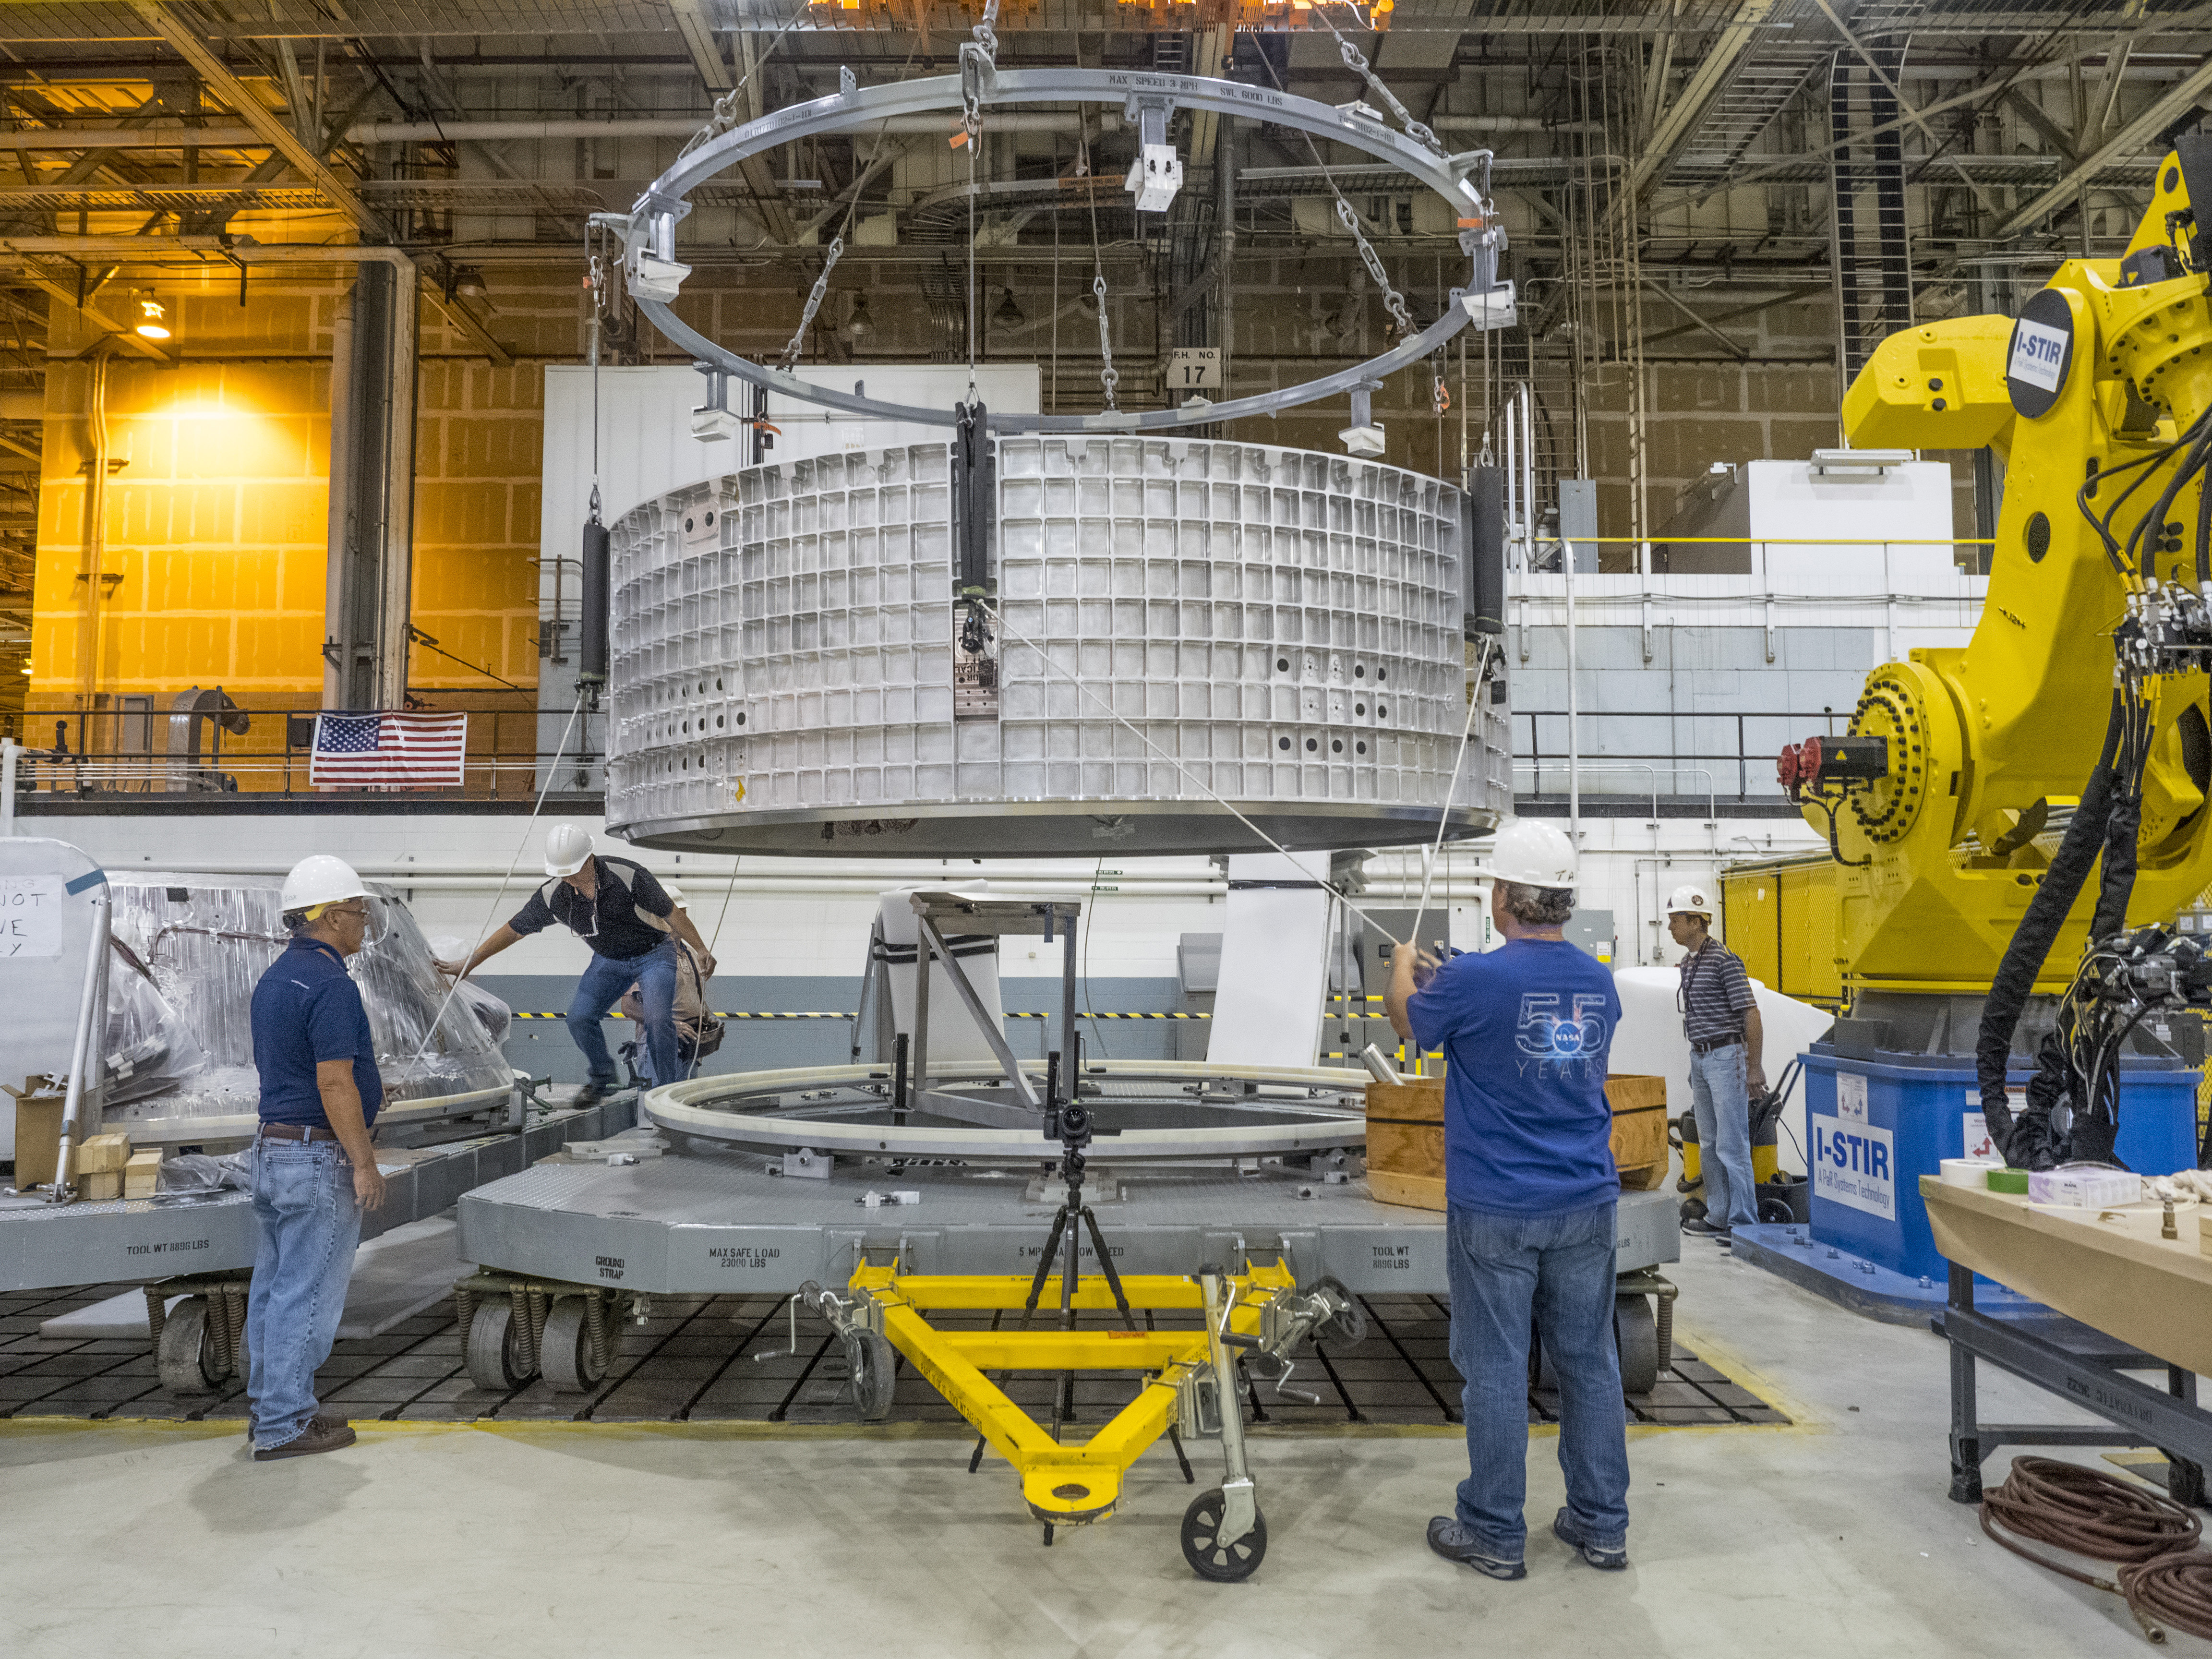 Welding Preparations For Orion Spacecraft At Michoud